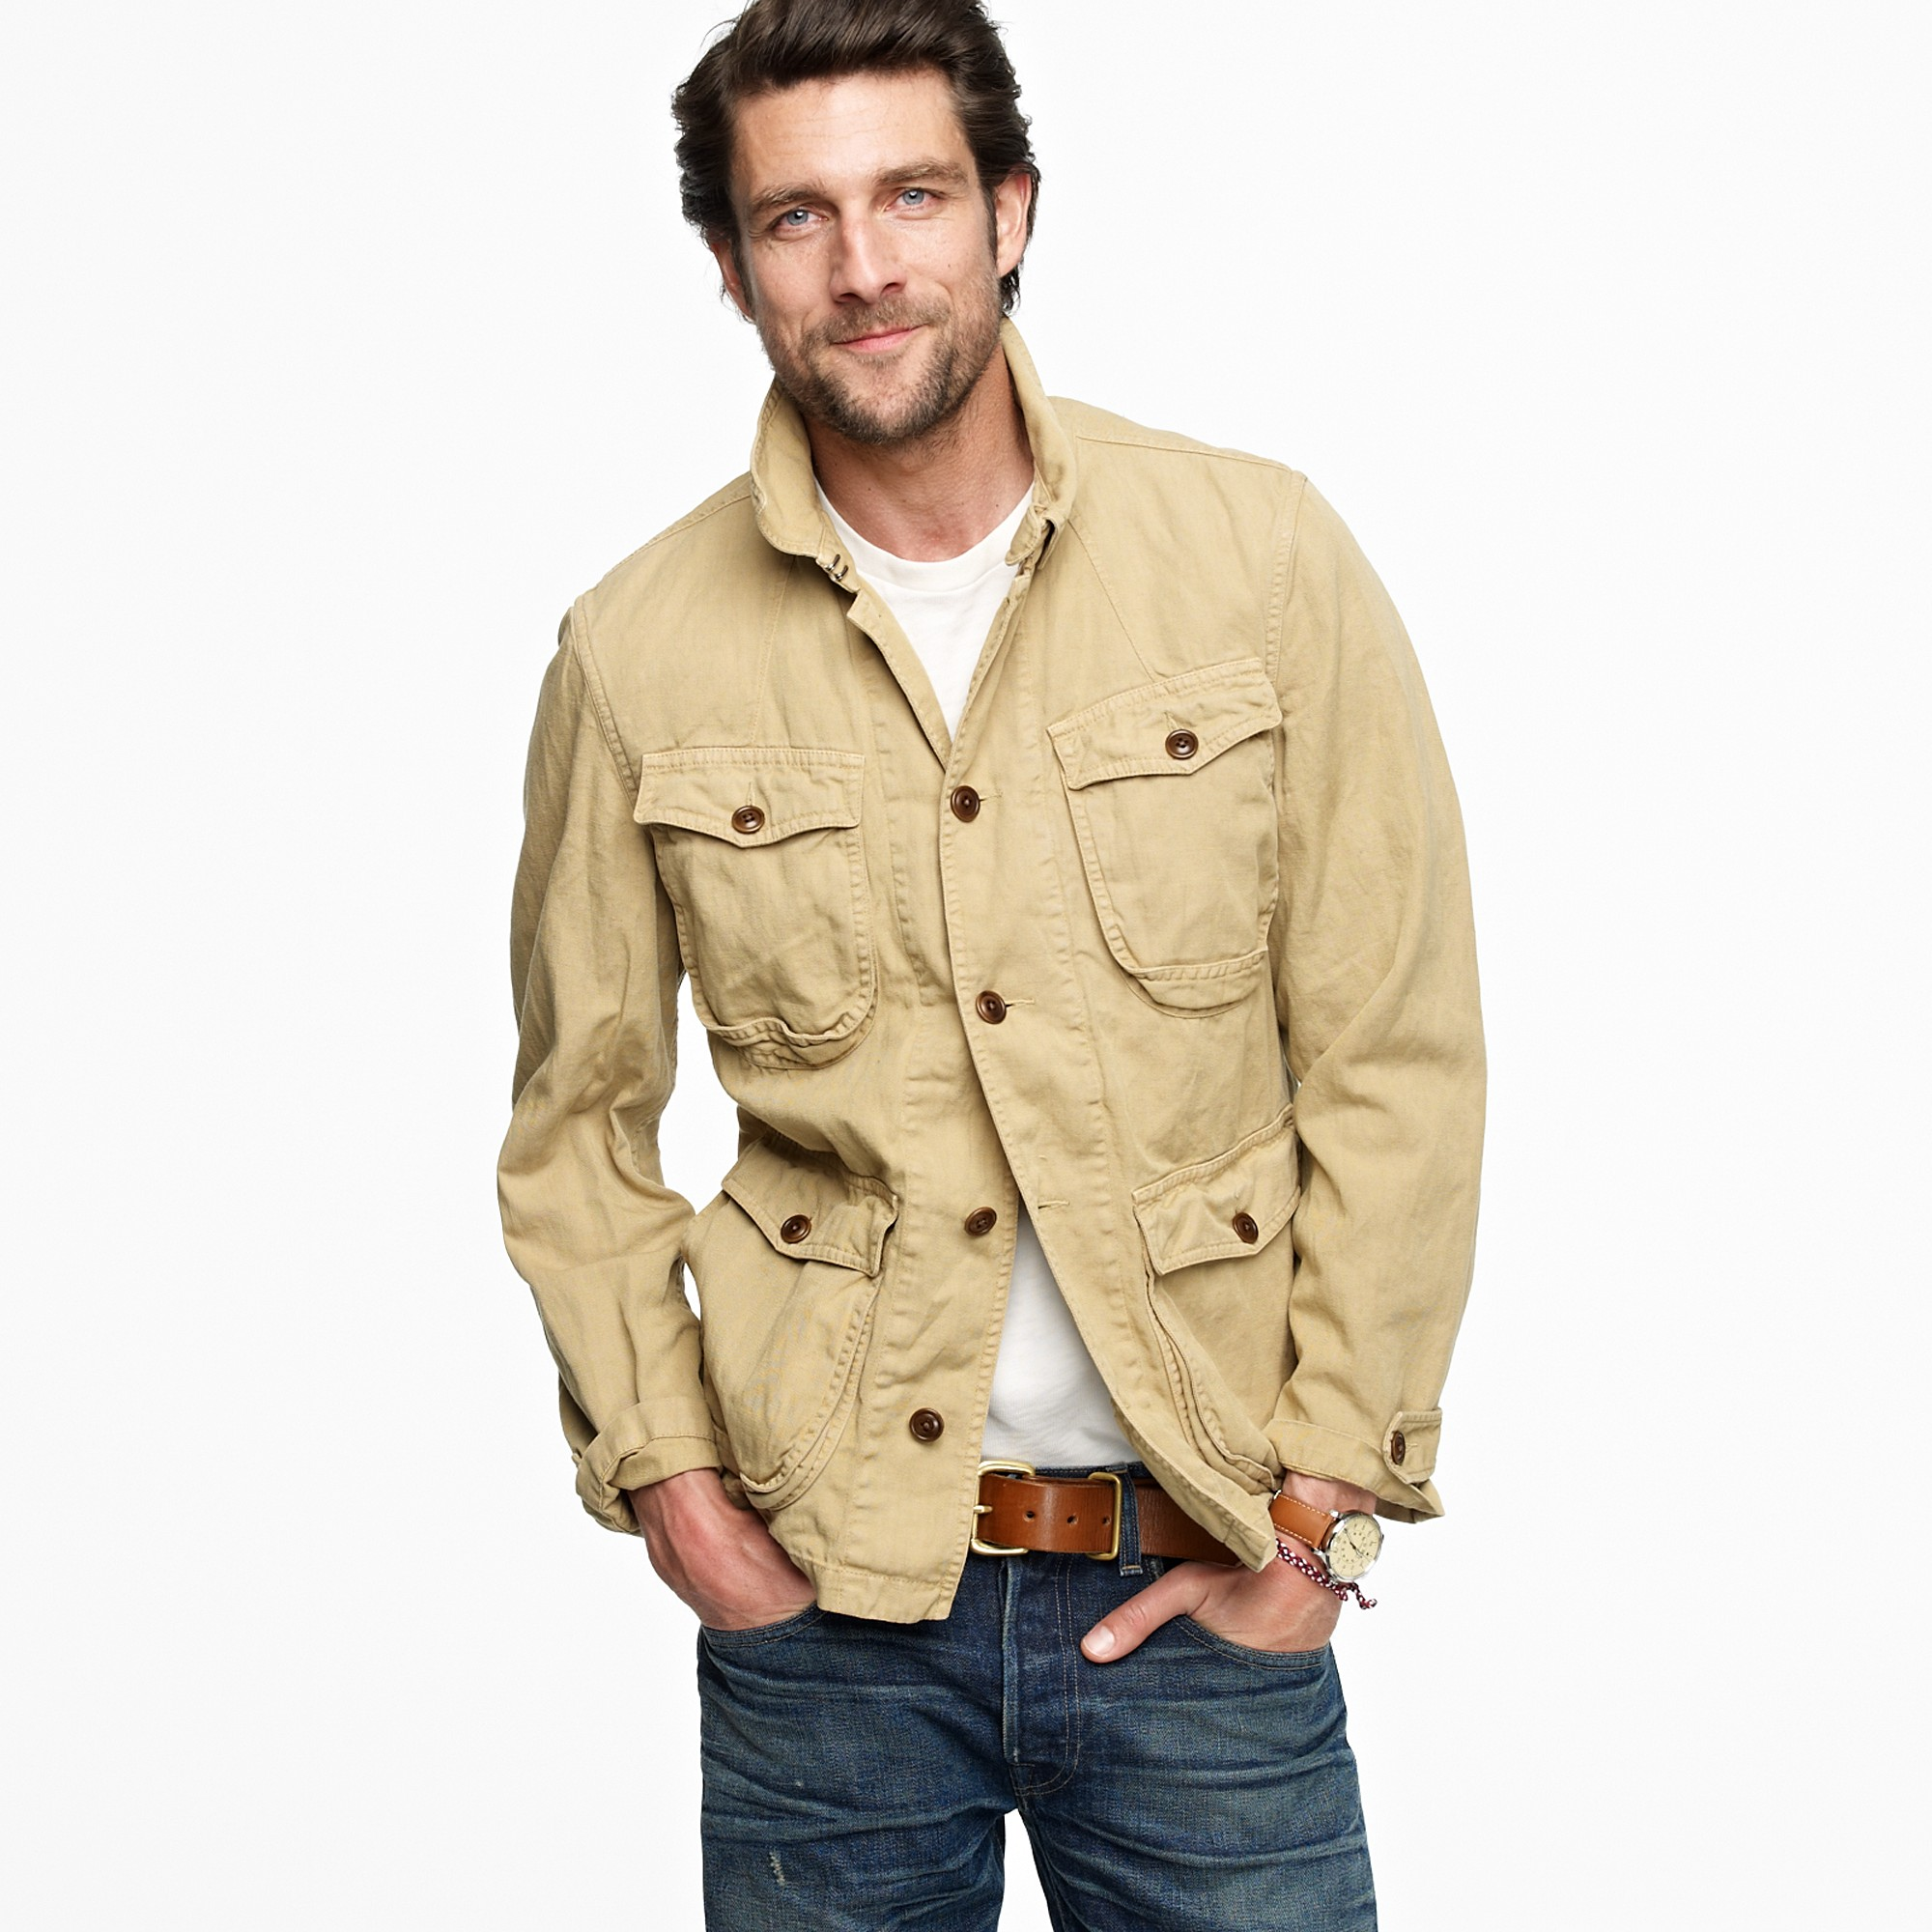 J Crew Wallace Barnes Northfield Jacket In Natural For Men